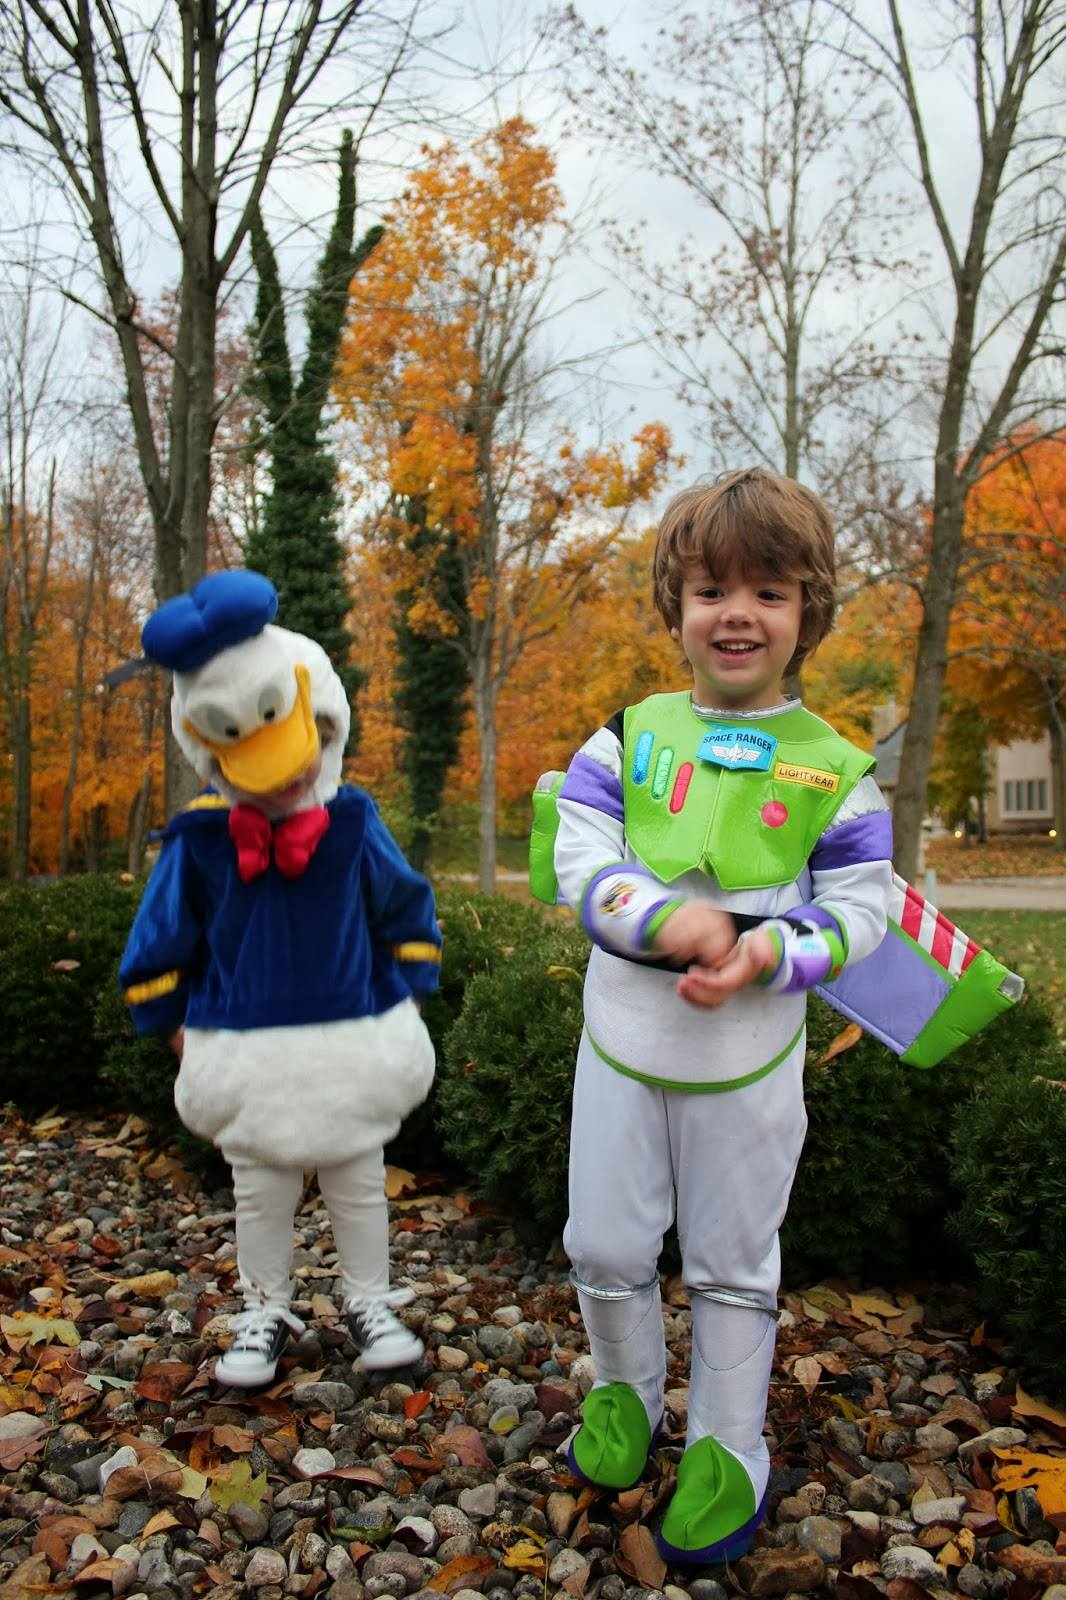 Disney with Little Ones: Fall Fun at Home